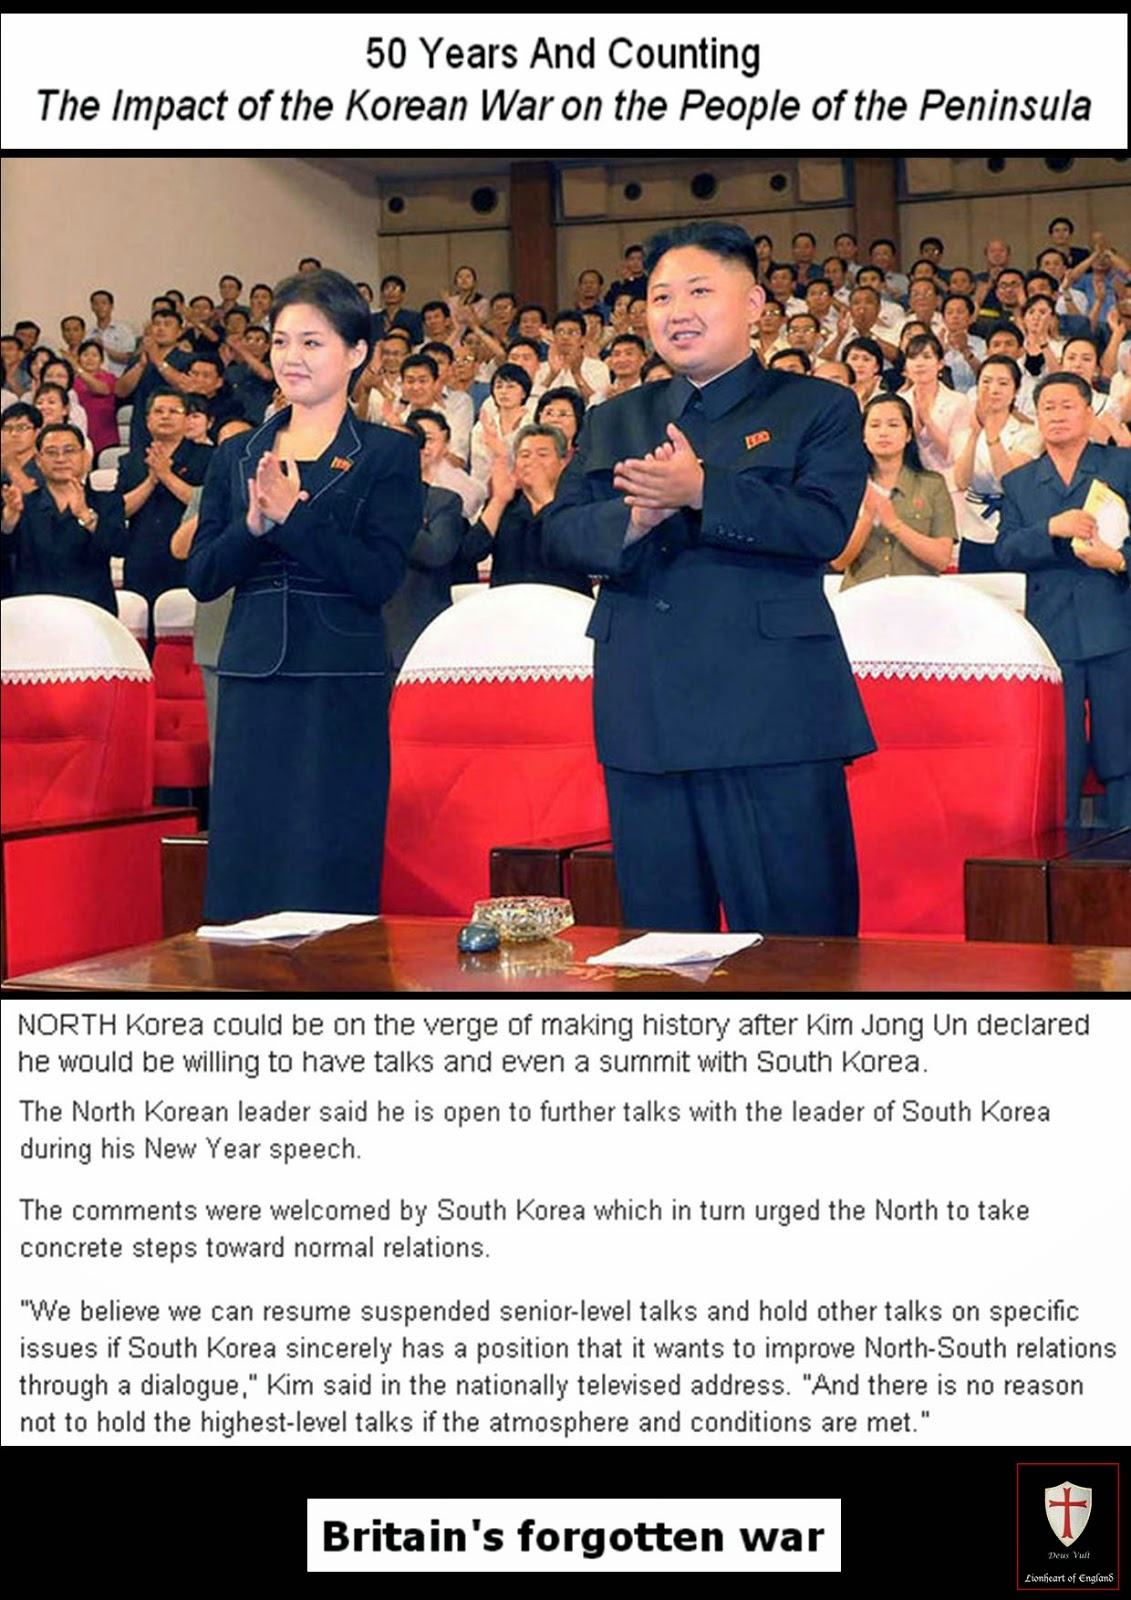 the war and peace negotiations between north and south korea From brink of war to hopes of peace: kim jong un heads south for summit  in a  meeting heavy with history and symbolism, north korean leader kim  lead to  the signing of a peace treaty between the north and the south,.